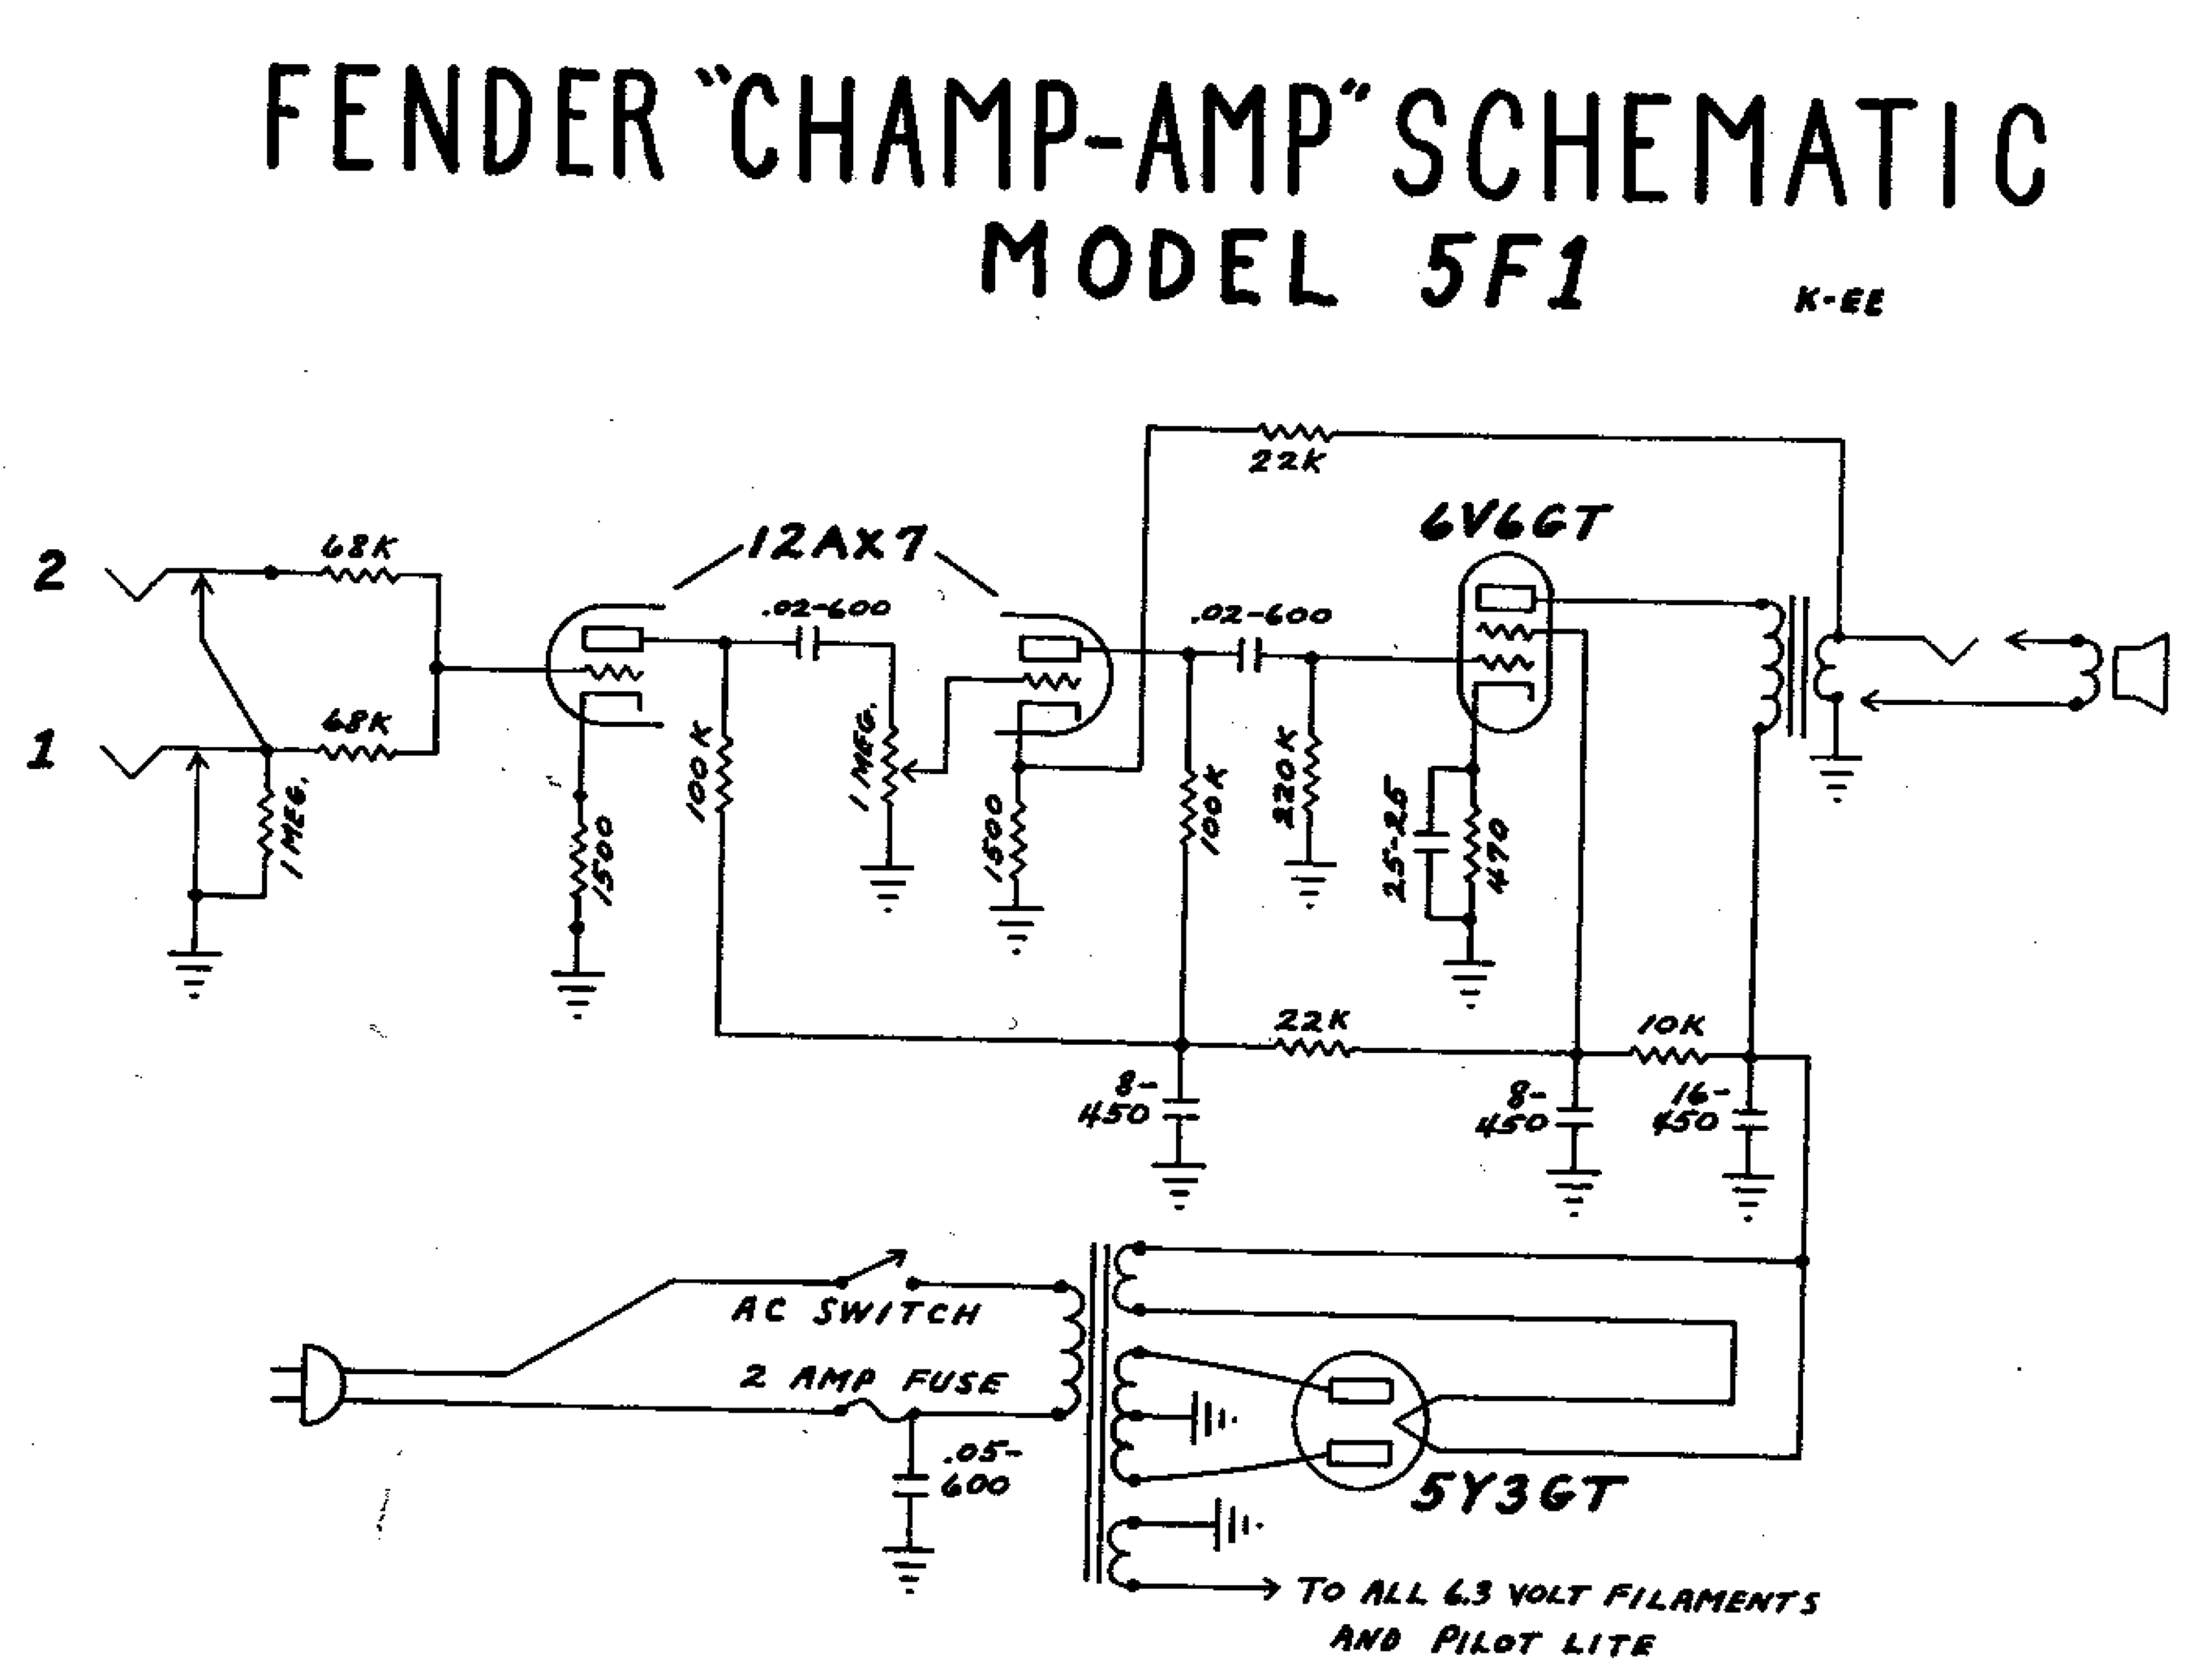 hight resolution of fender amplifier wiring diagram wiring diagram operationsfender amplifier wiring diagram 3